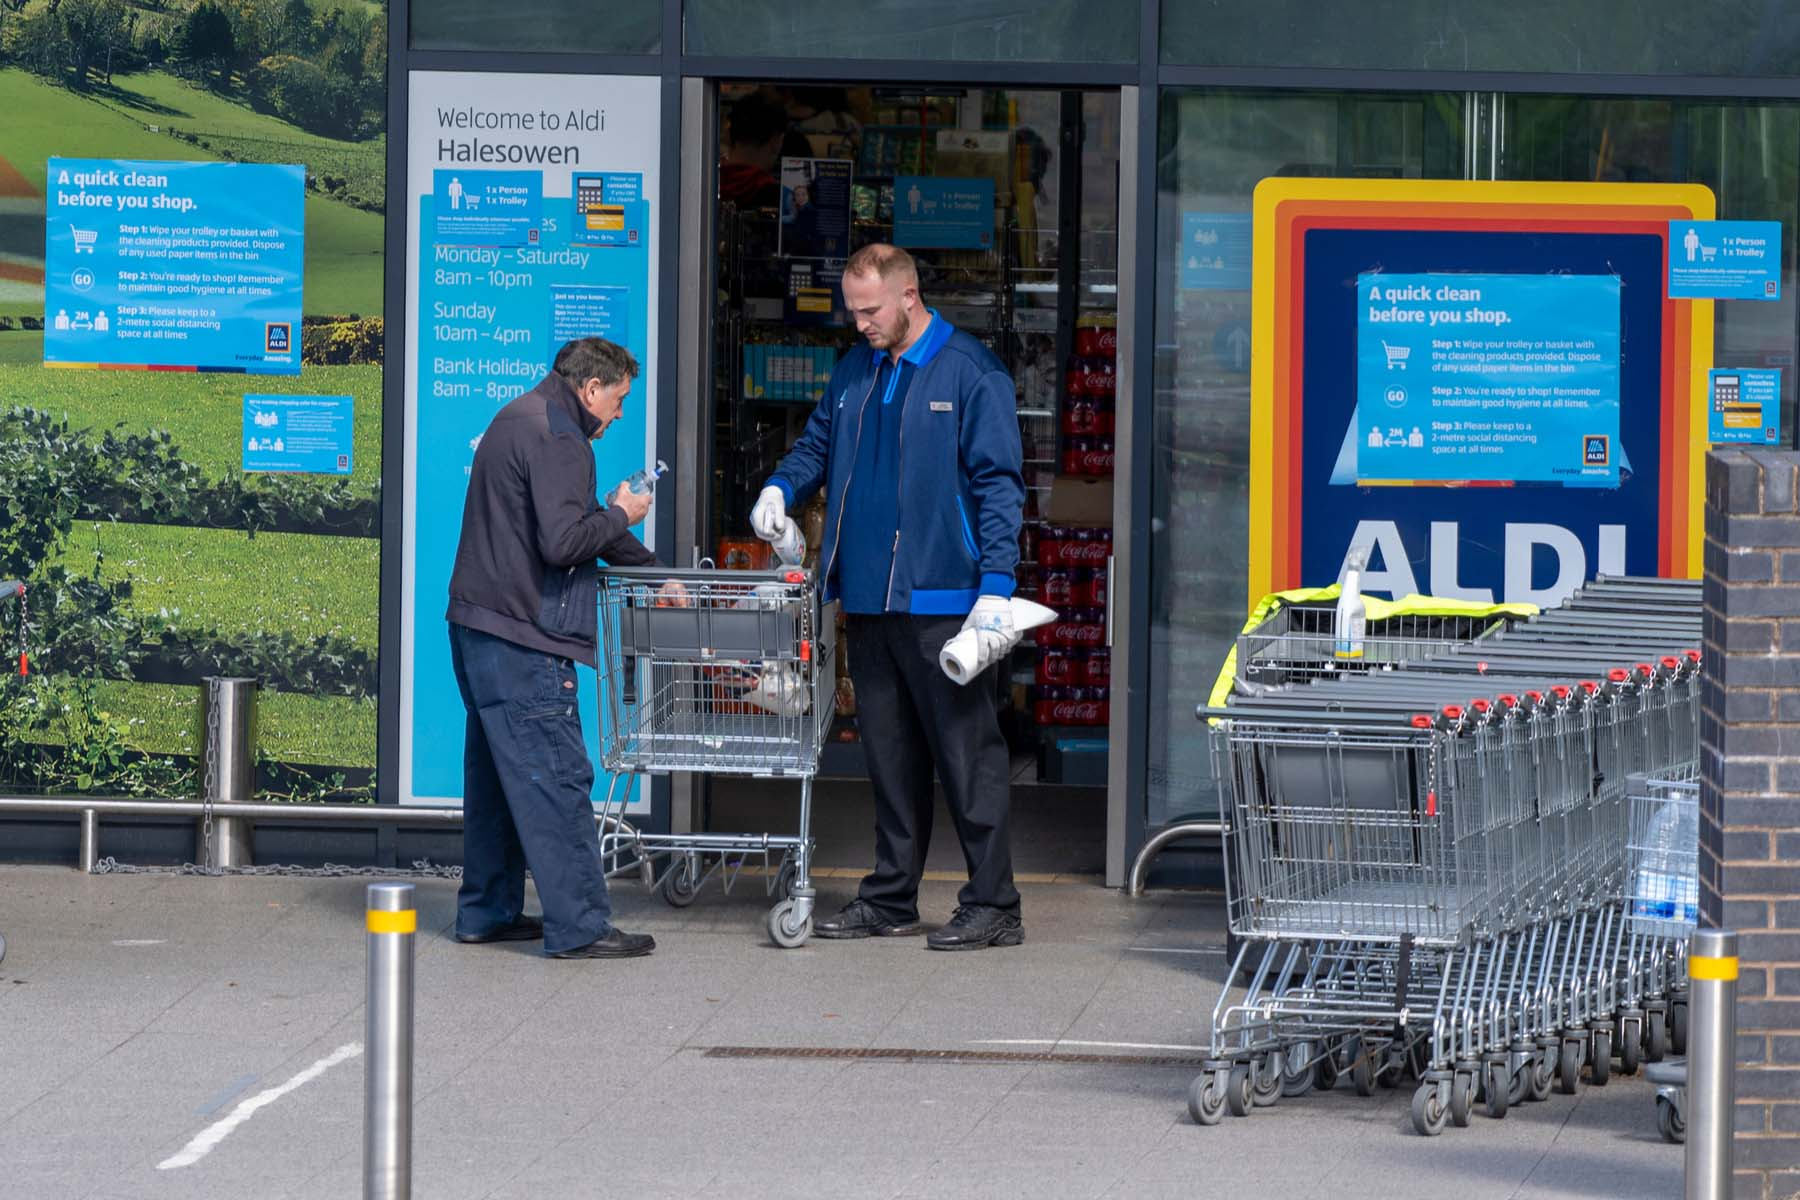 Supermarket workers in the UK